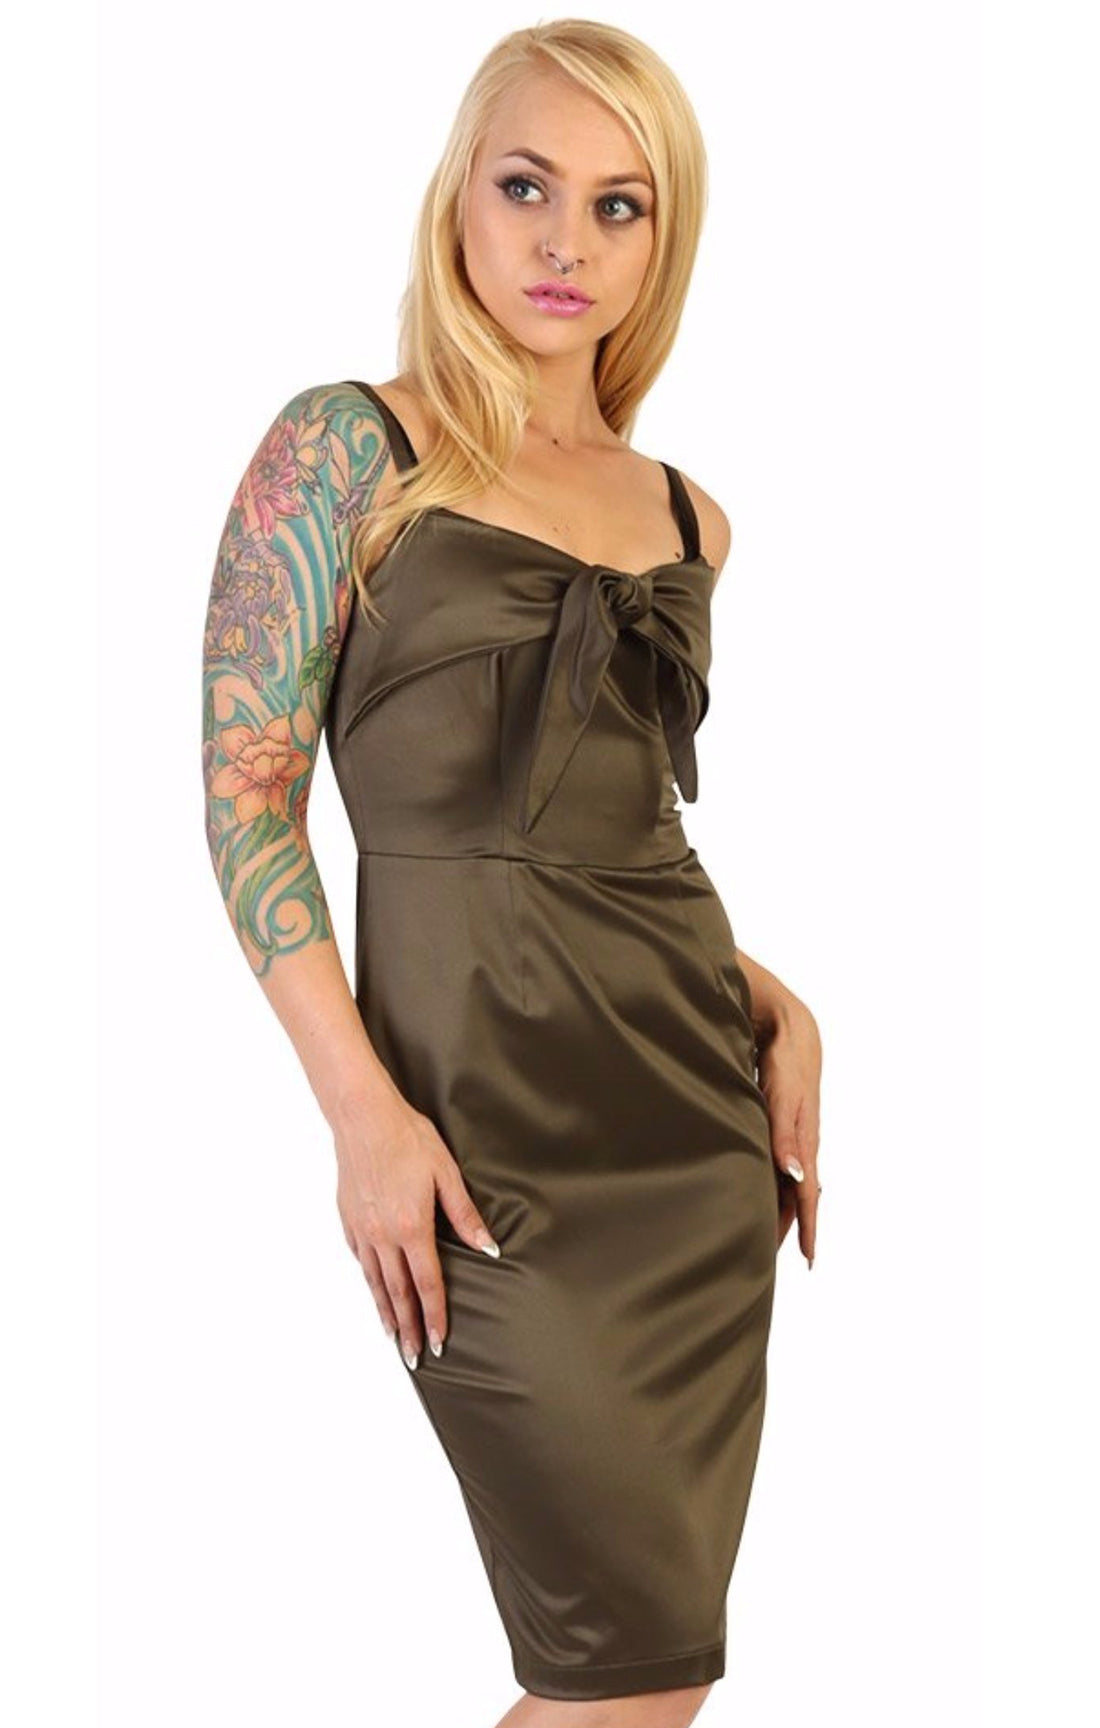 The PUCKER UP Tie Front Dress